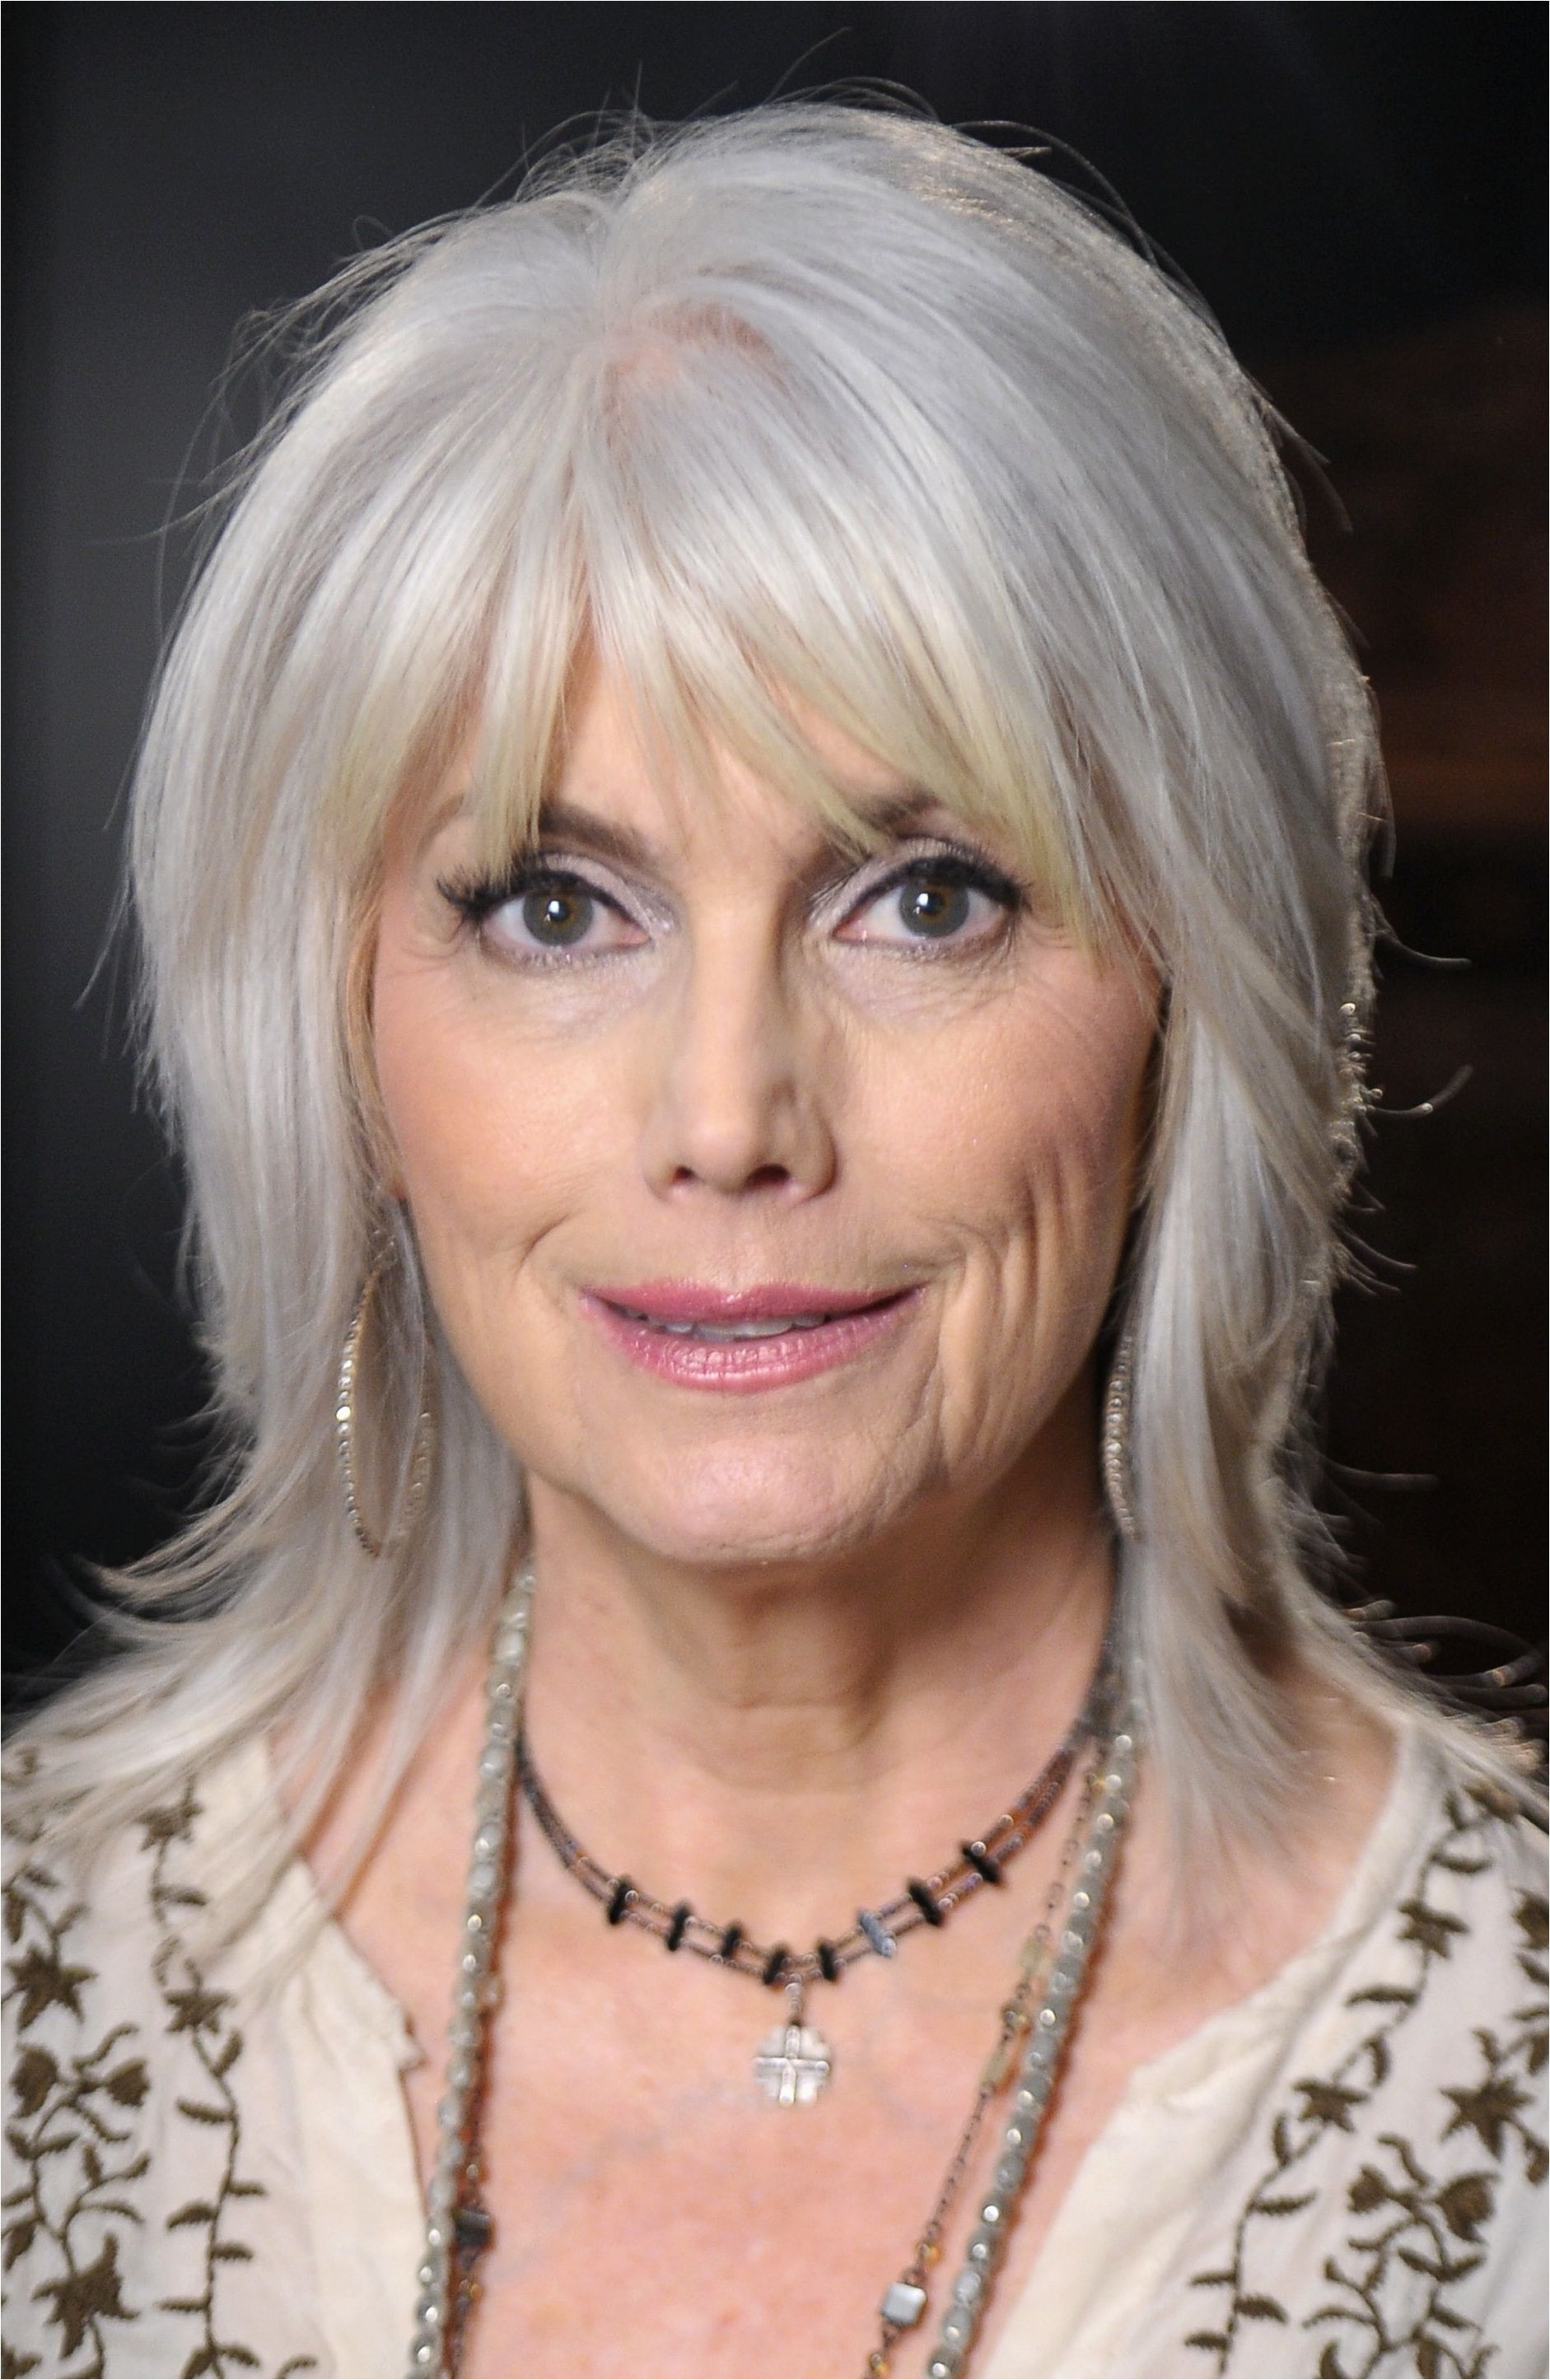 26 of the Most Amazing Shag Hairstyles Emmylou Harris Another example of an older woman with a shag hairstyle